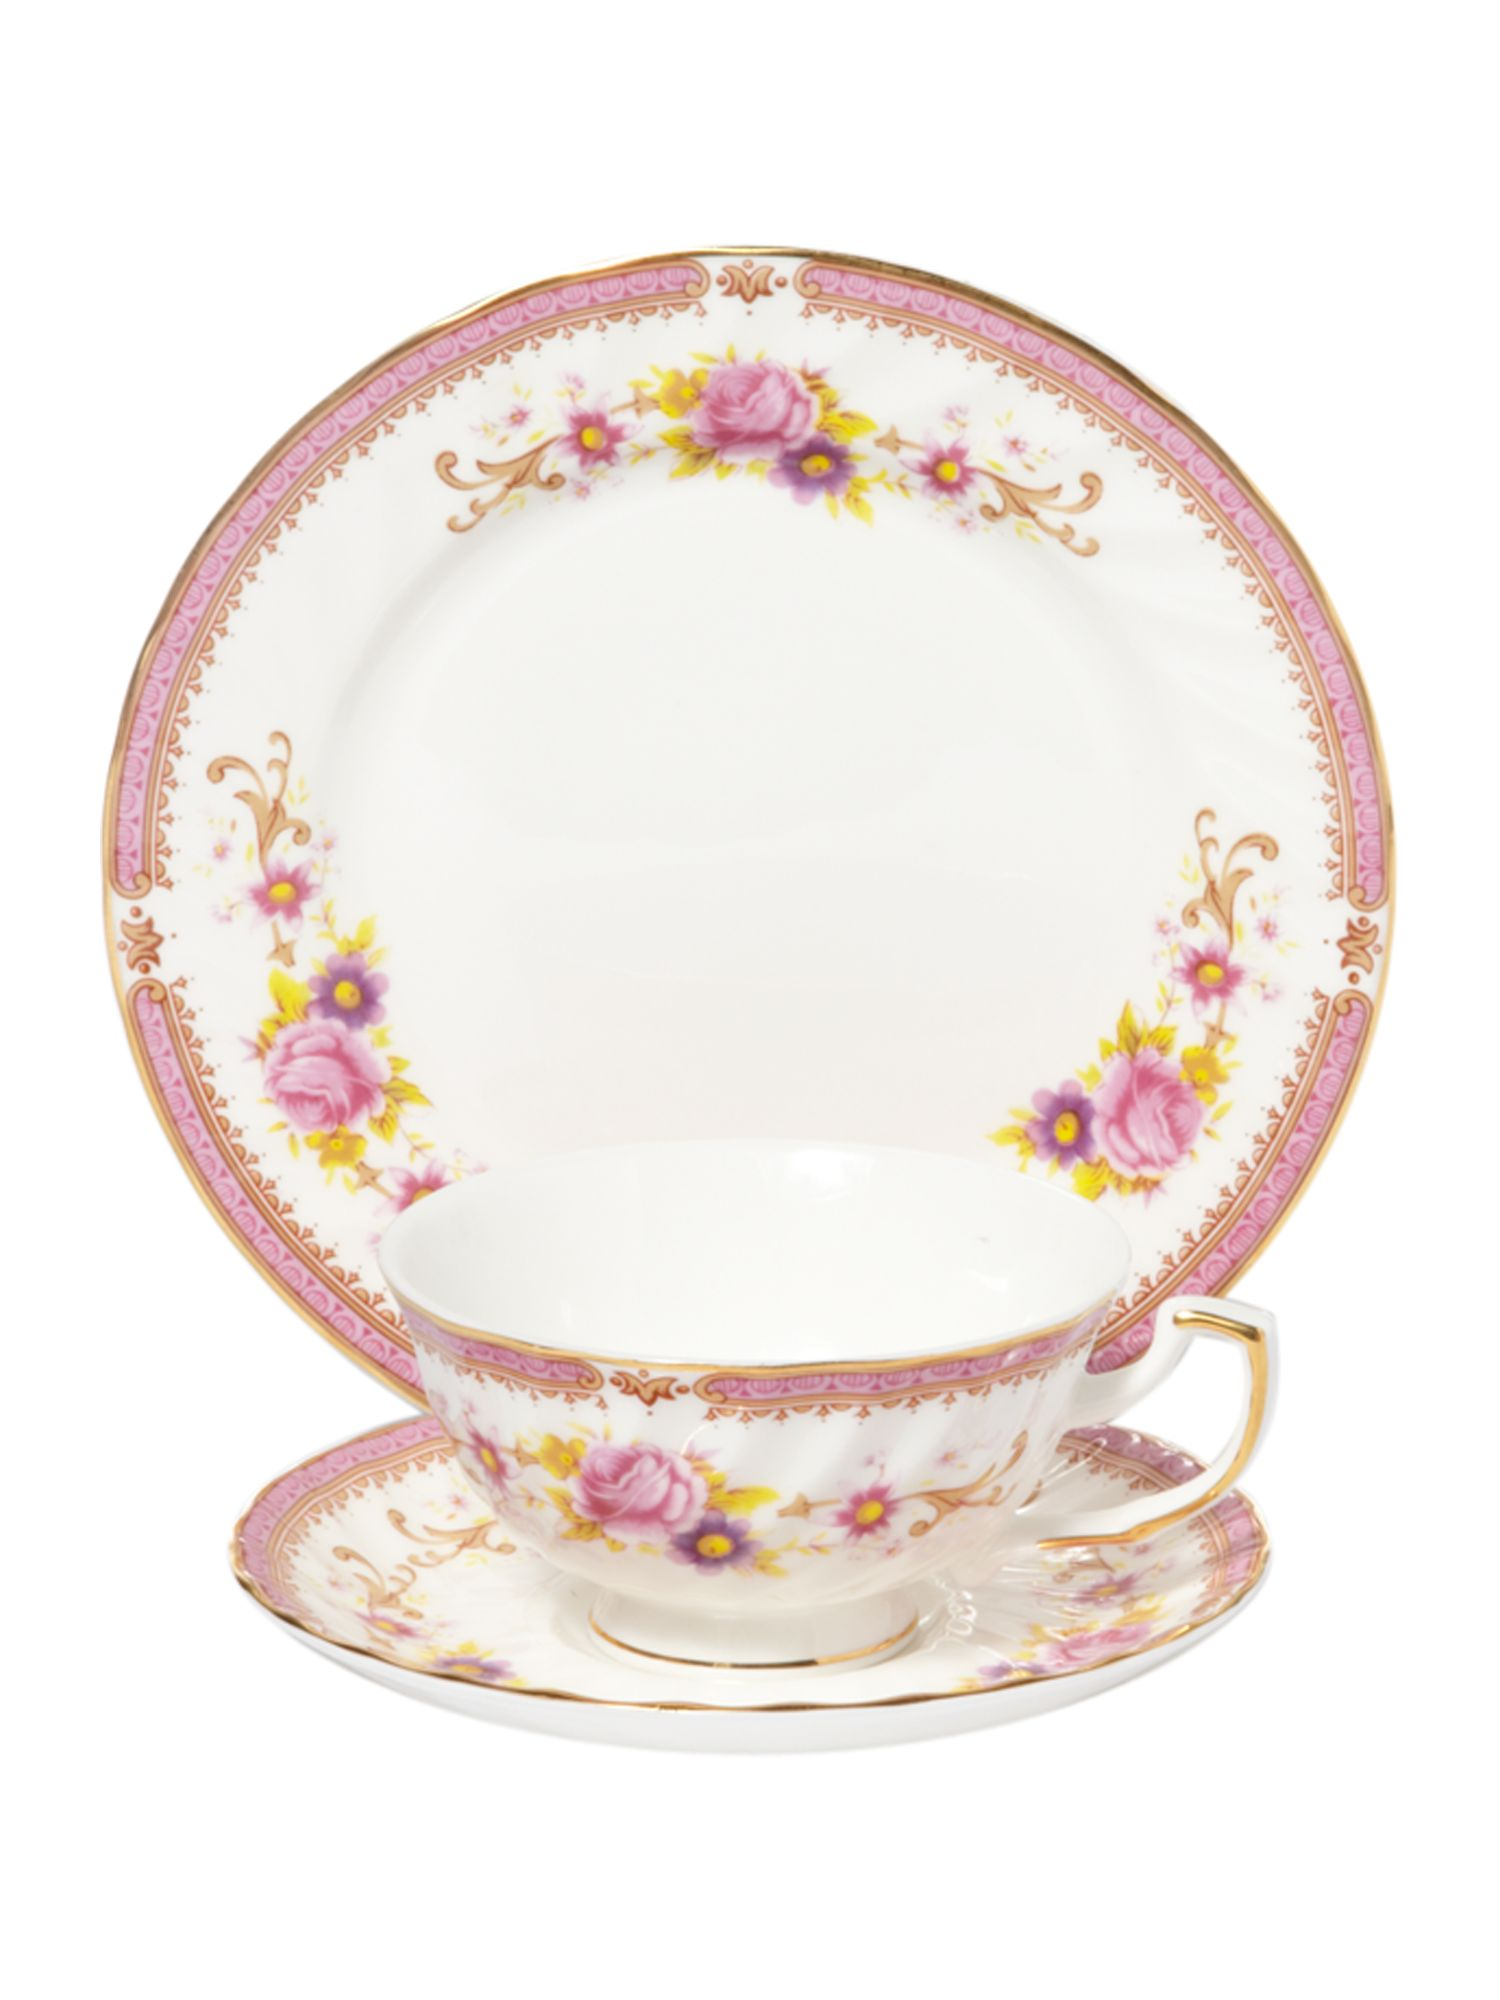 Kensington rose teaset